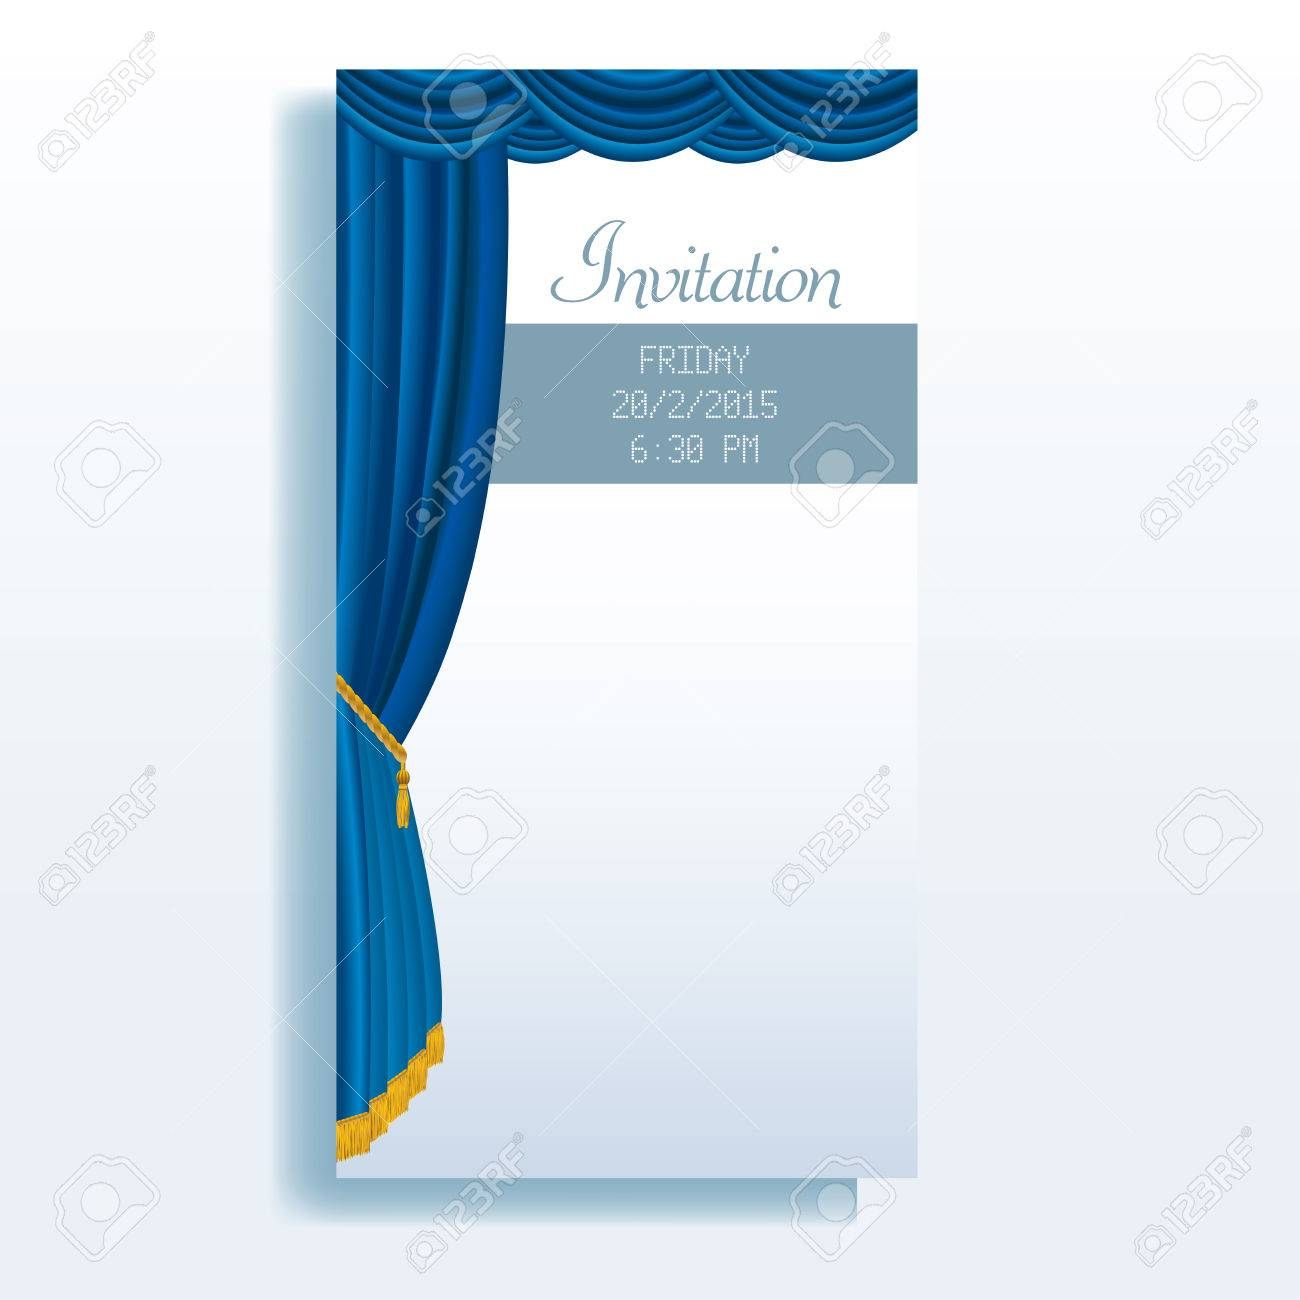 Theater curtains download free vector art stock graphics amp images - Vector Vector Layout Of Invitation Card With Blue Stage Curtain